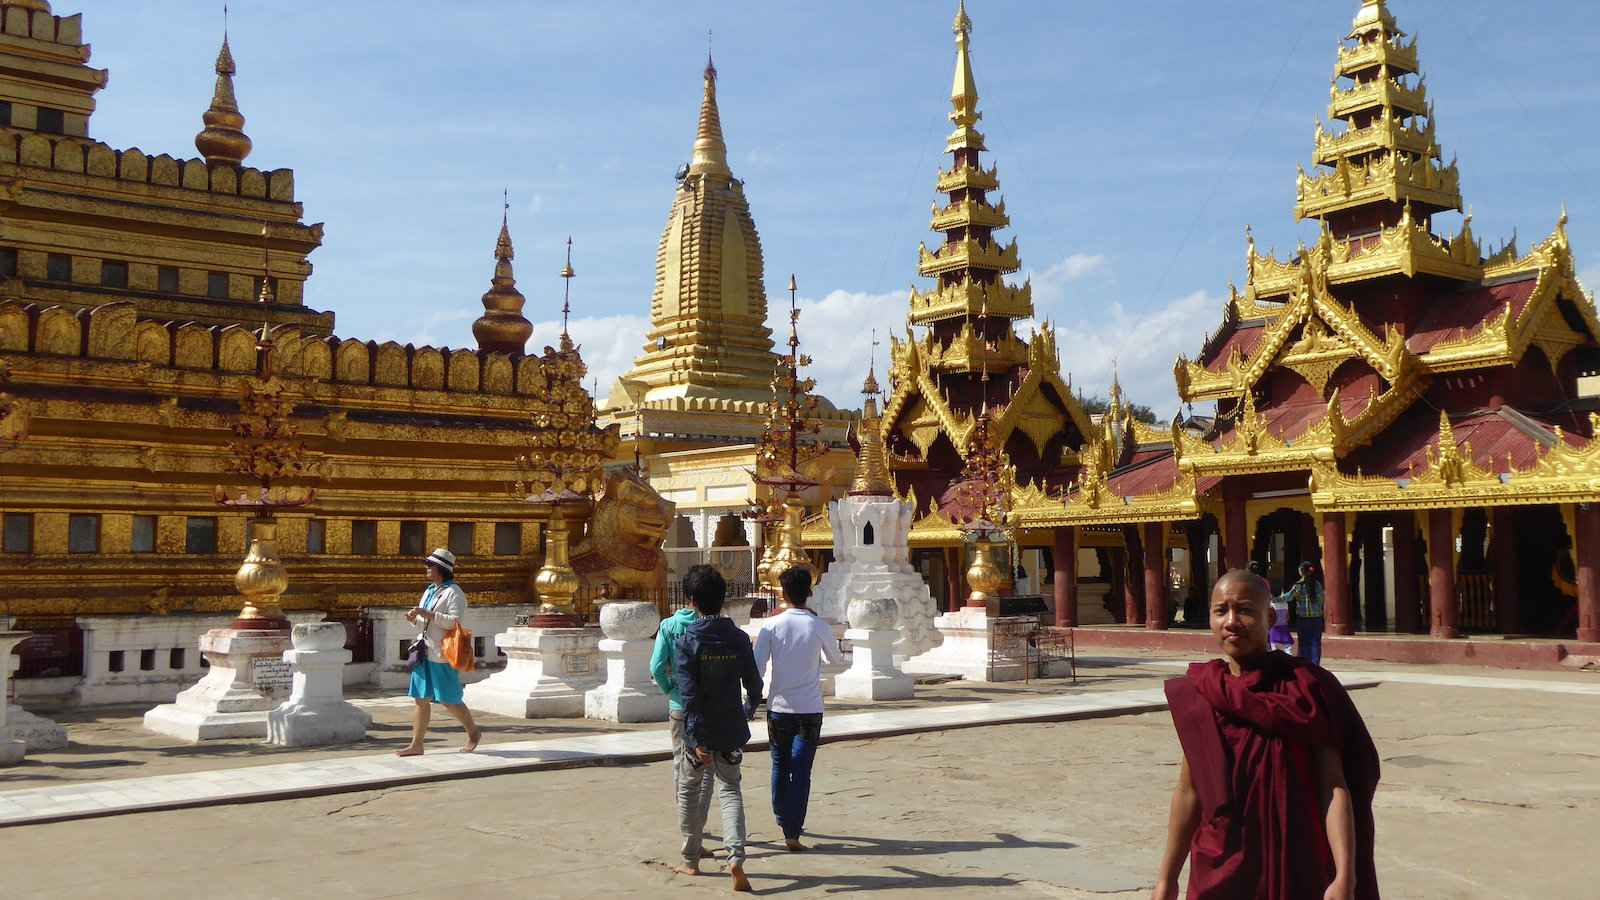 Shwezigon Pagoda is a gorgeous gold temple in Bagan, Myanmar